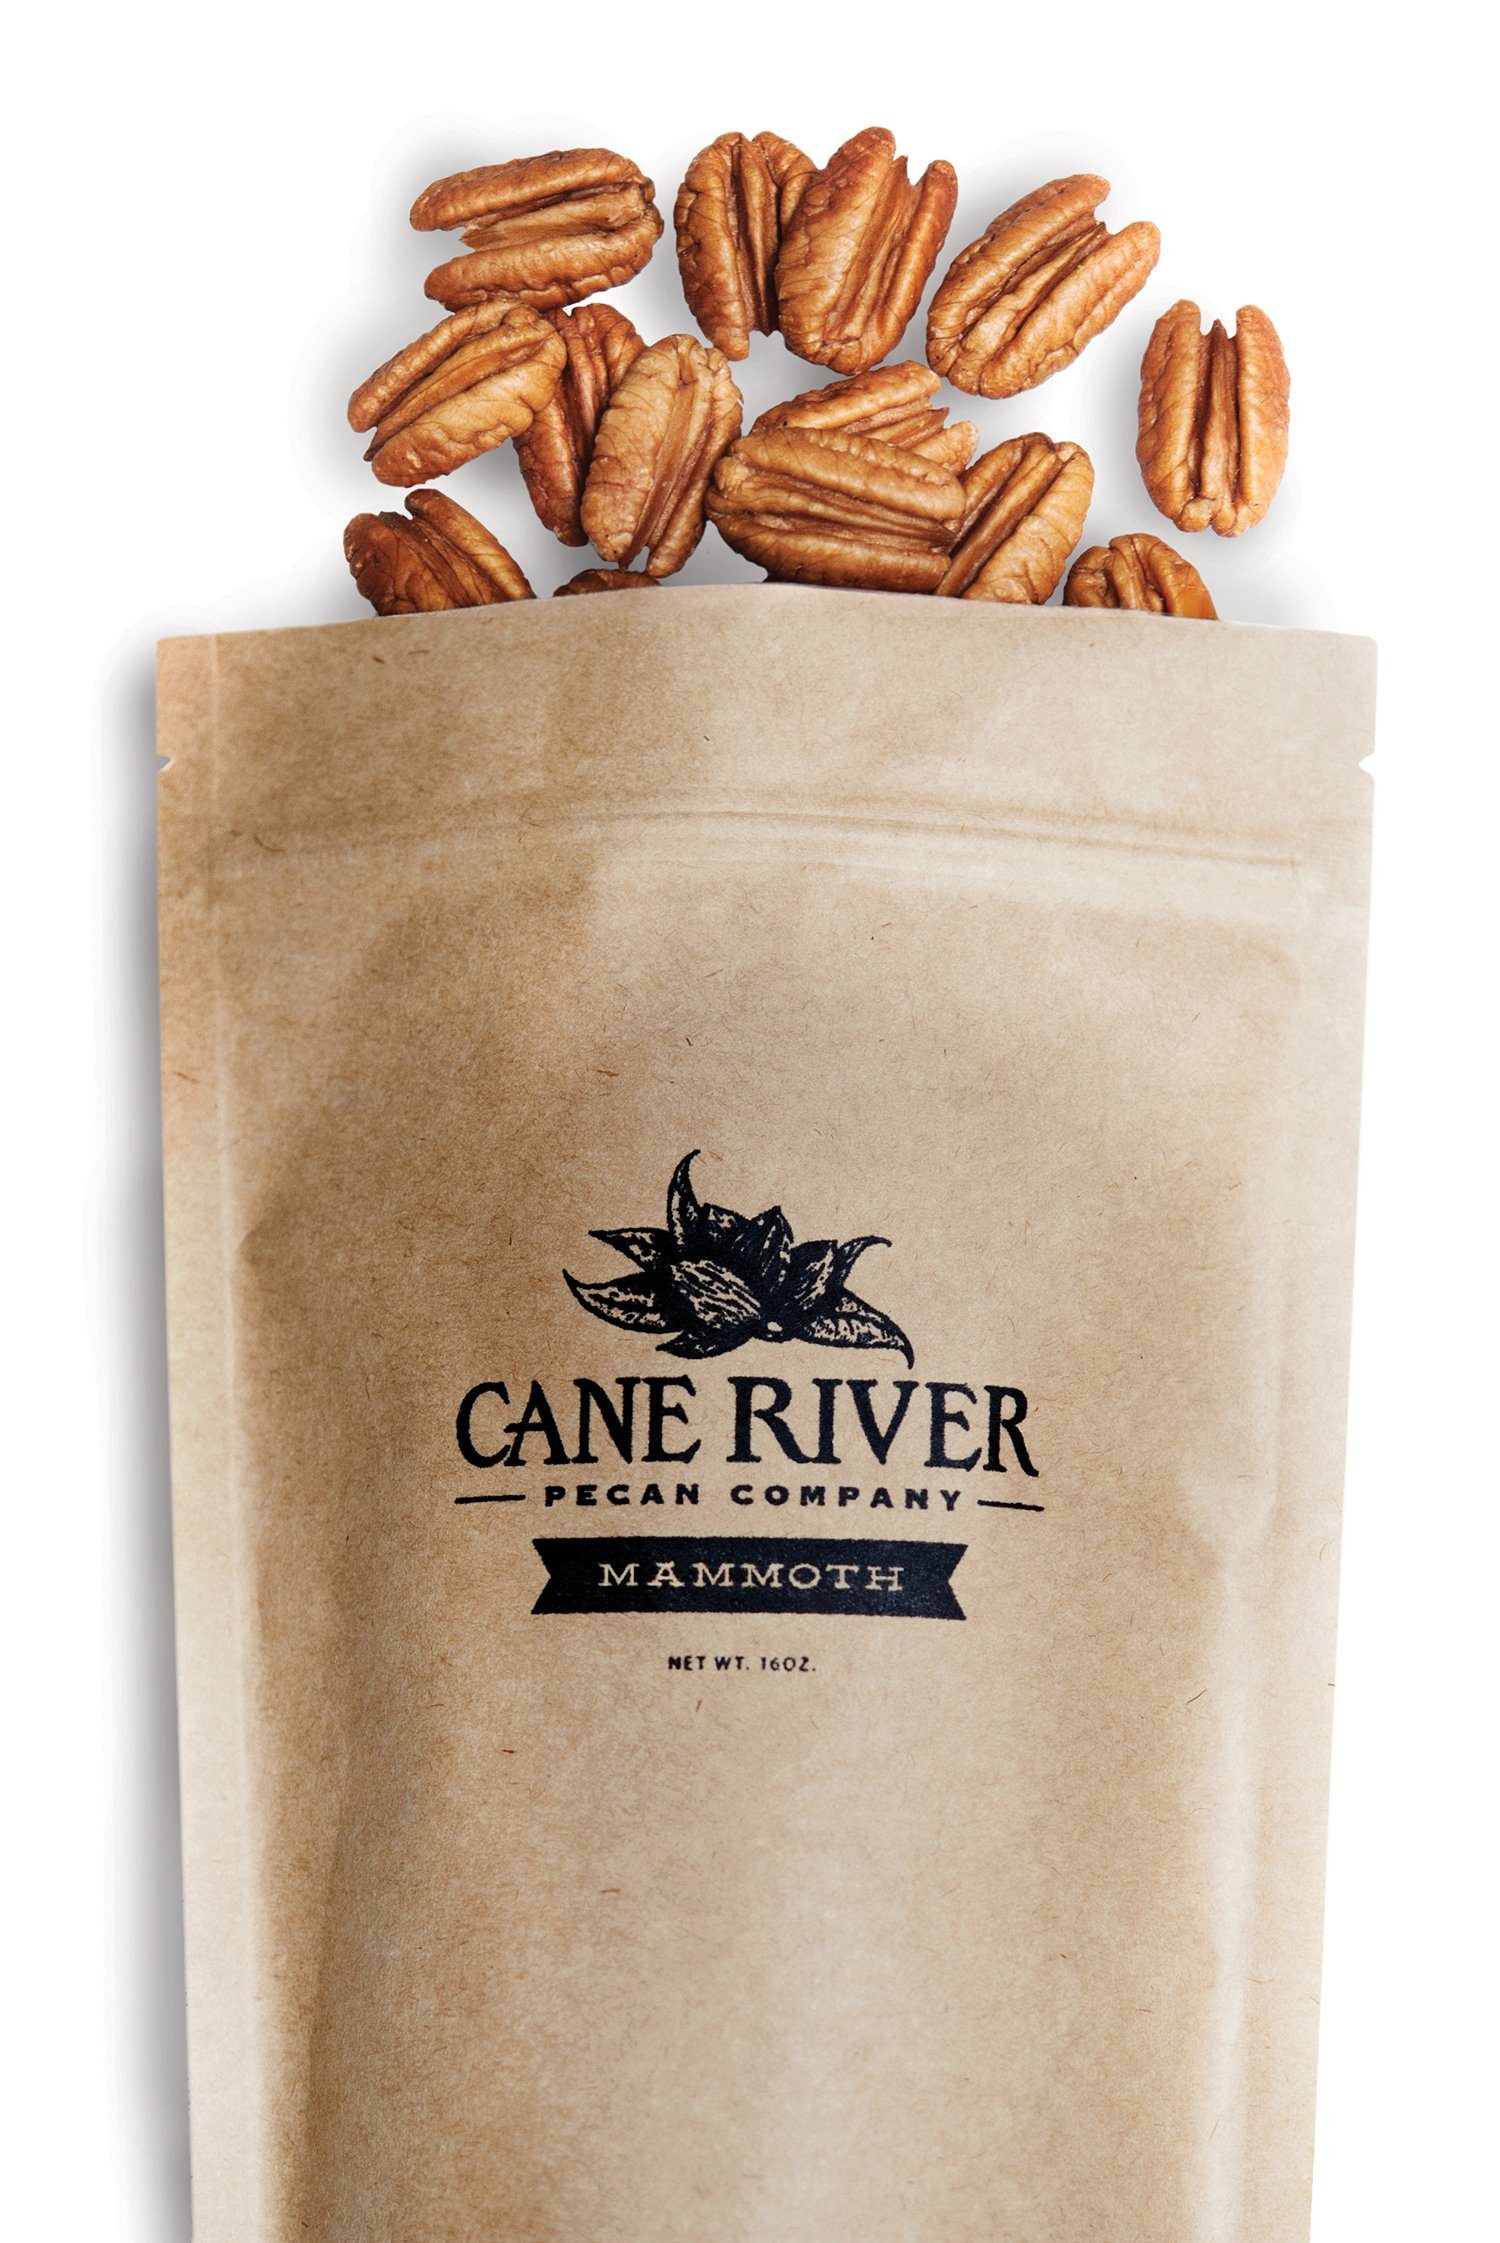 Mammoth Desirable Pecan Halves, 1 pound bag - Cane River Pecan Co.